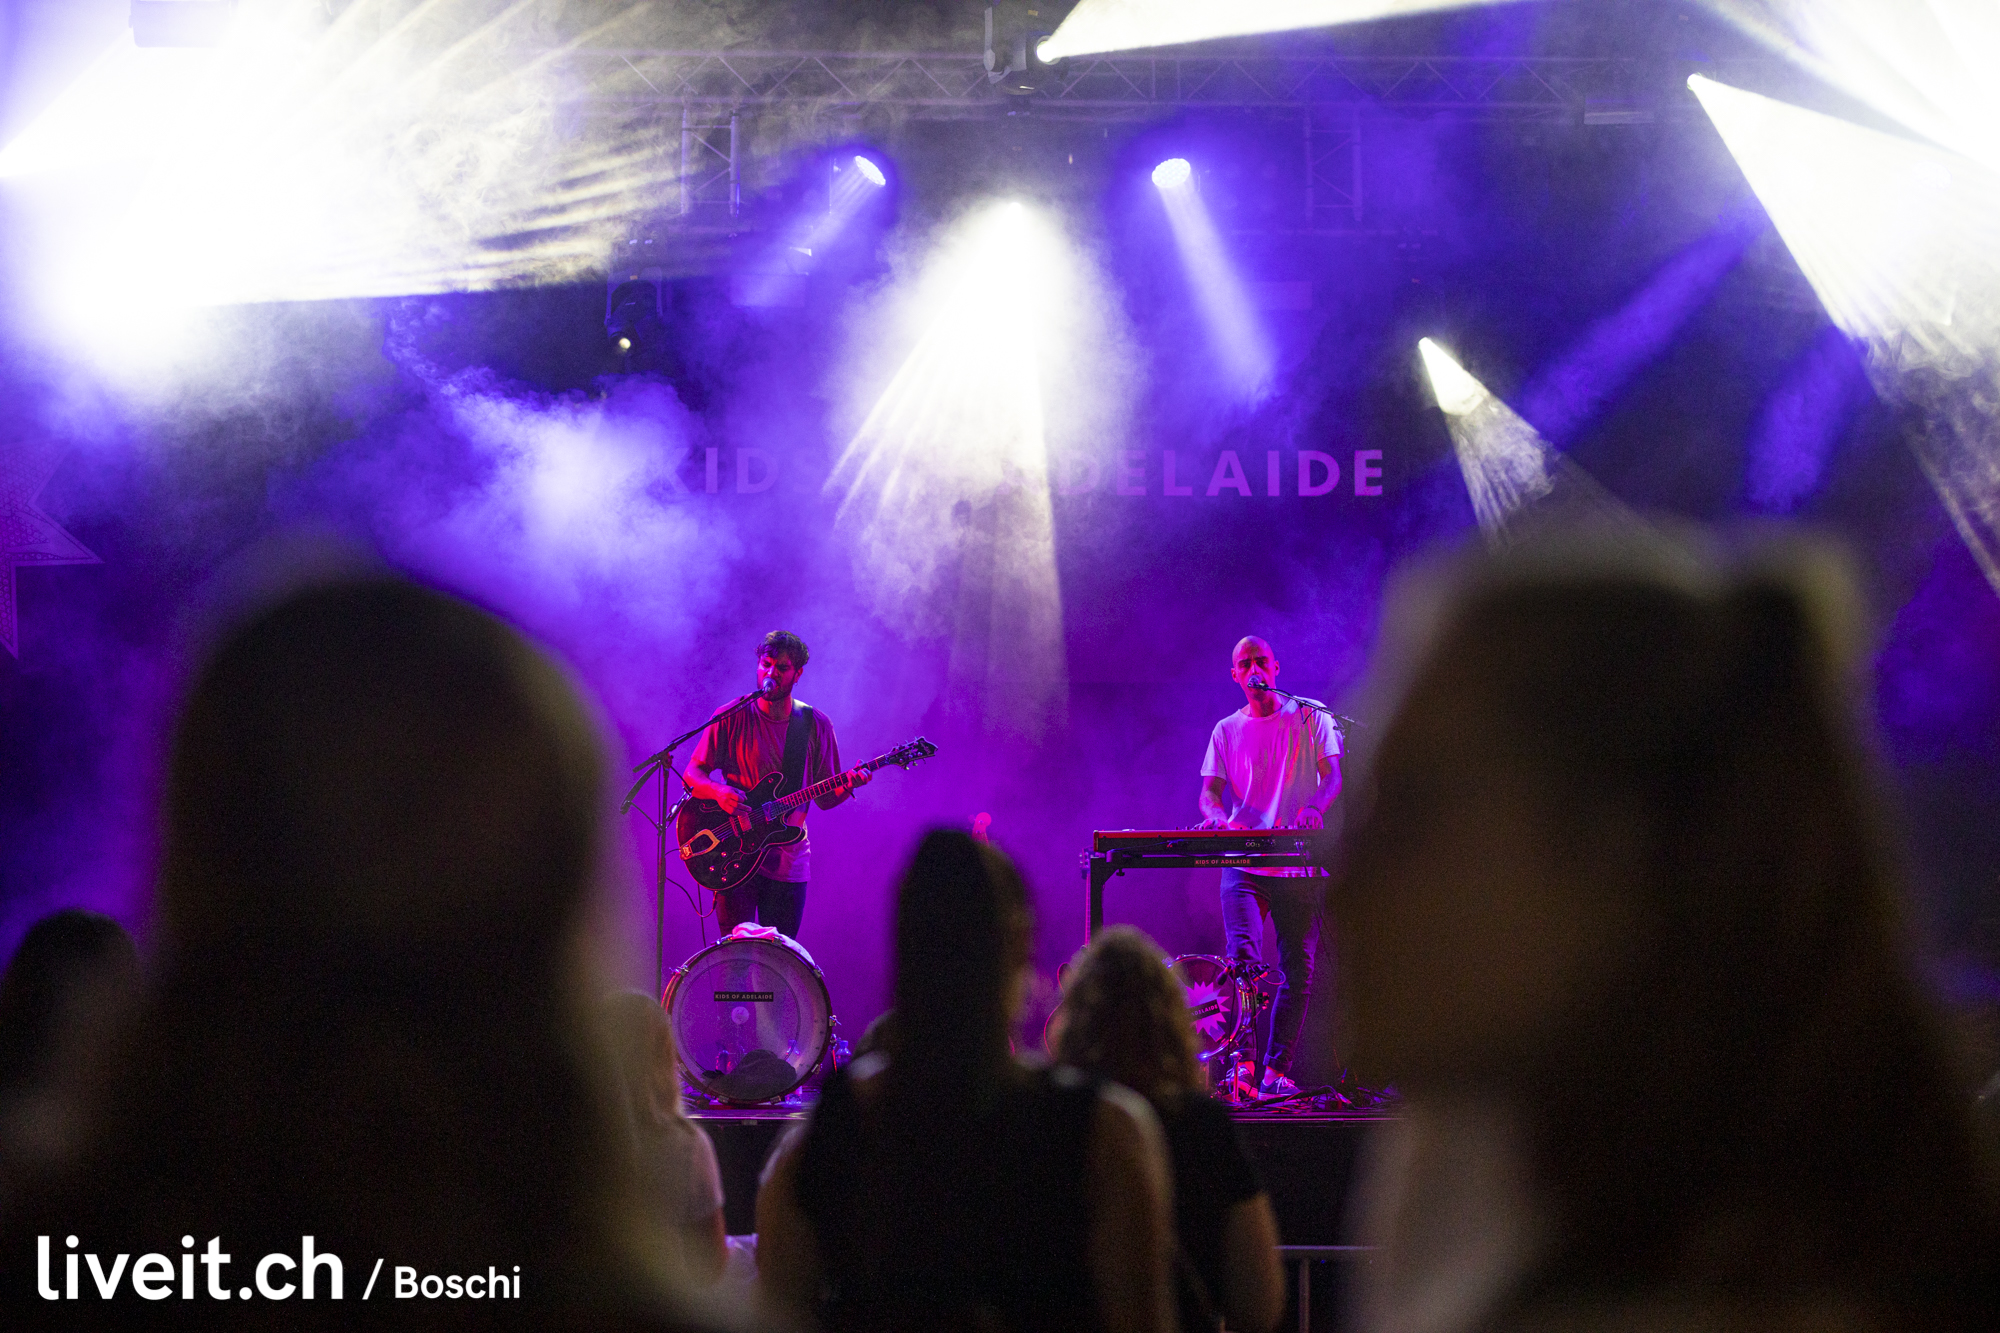 Kids of Adelaine am Thunfest 2019 (liveit.ch/boschi)